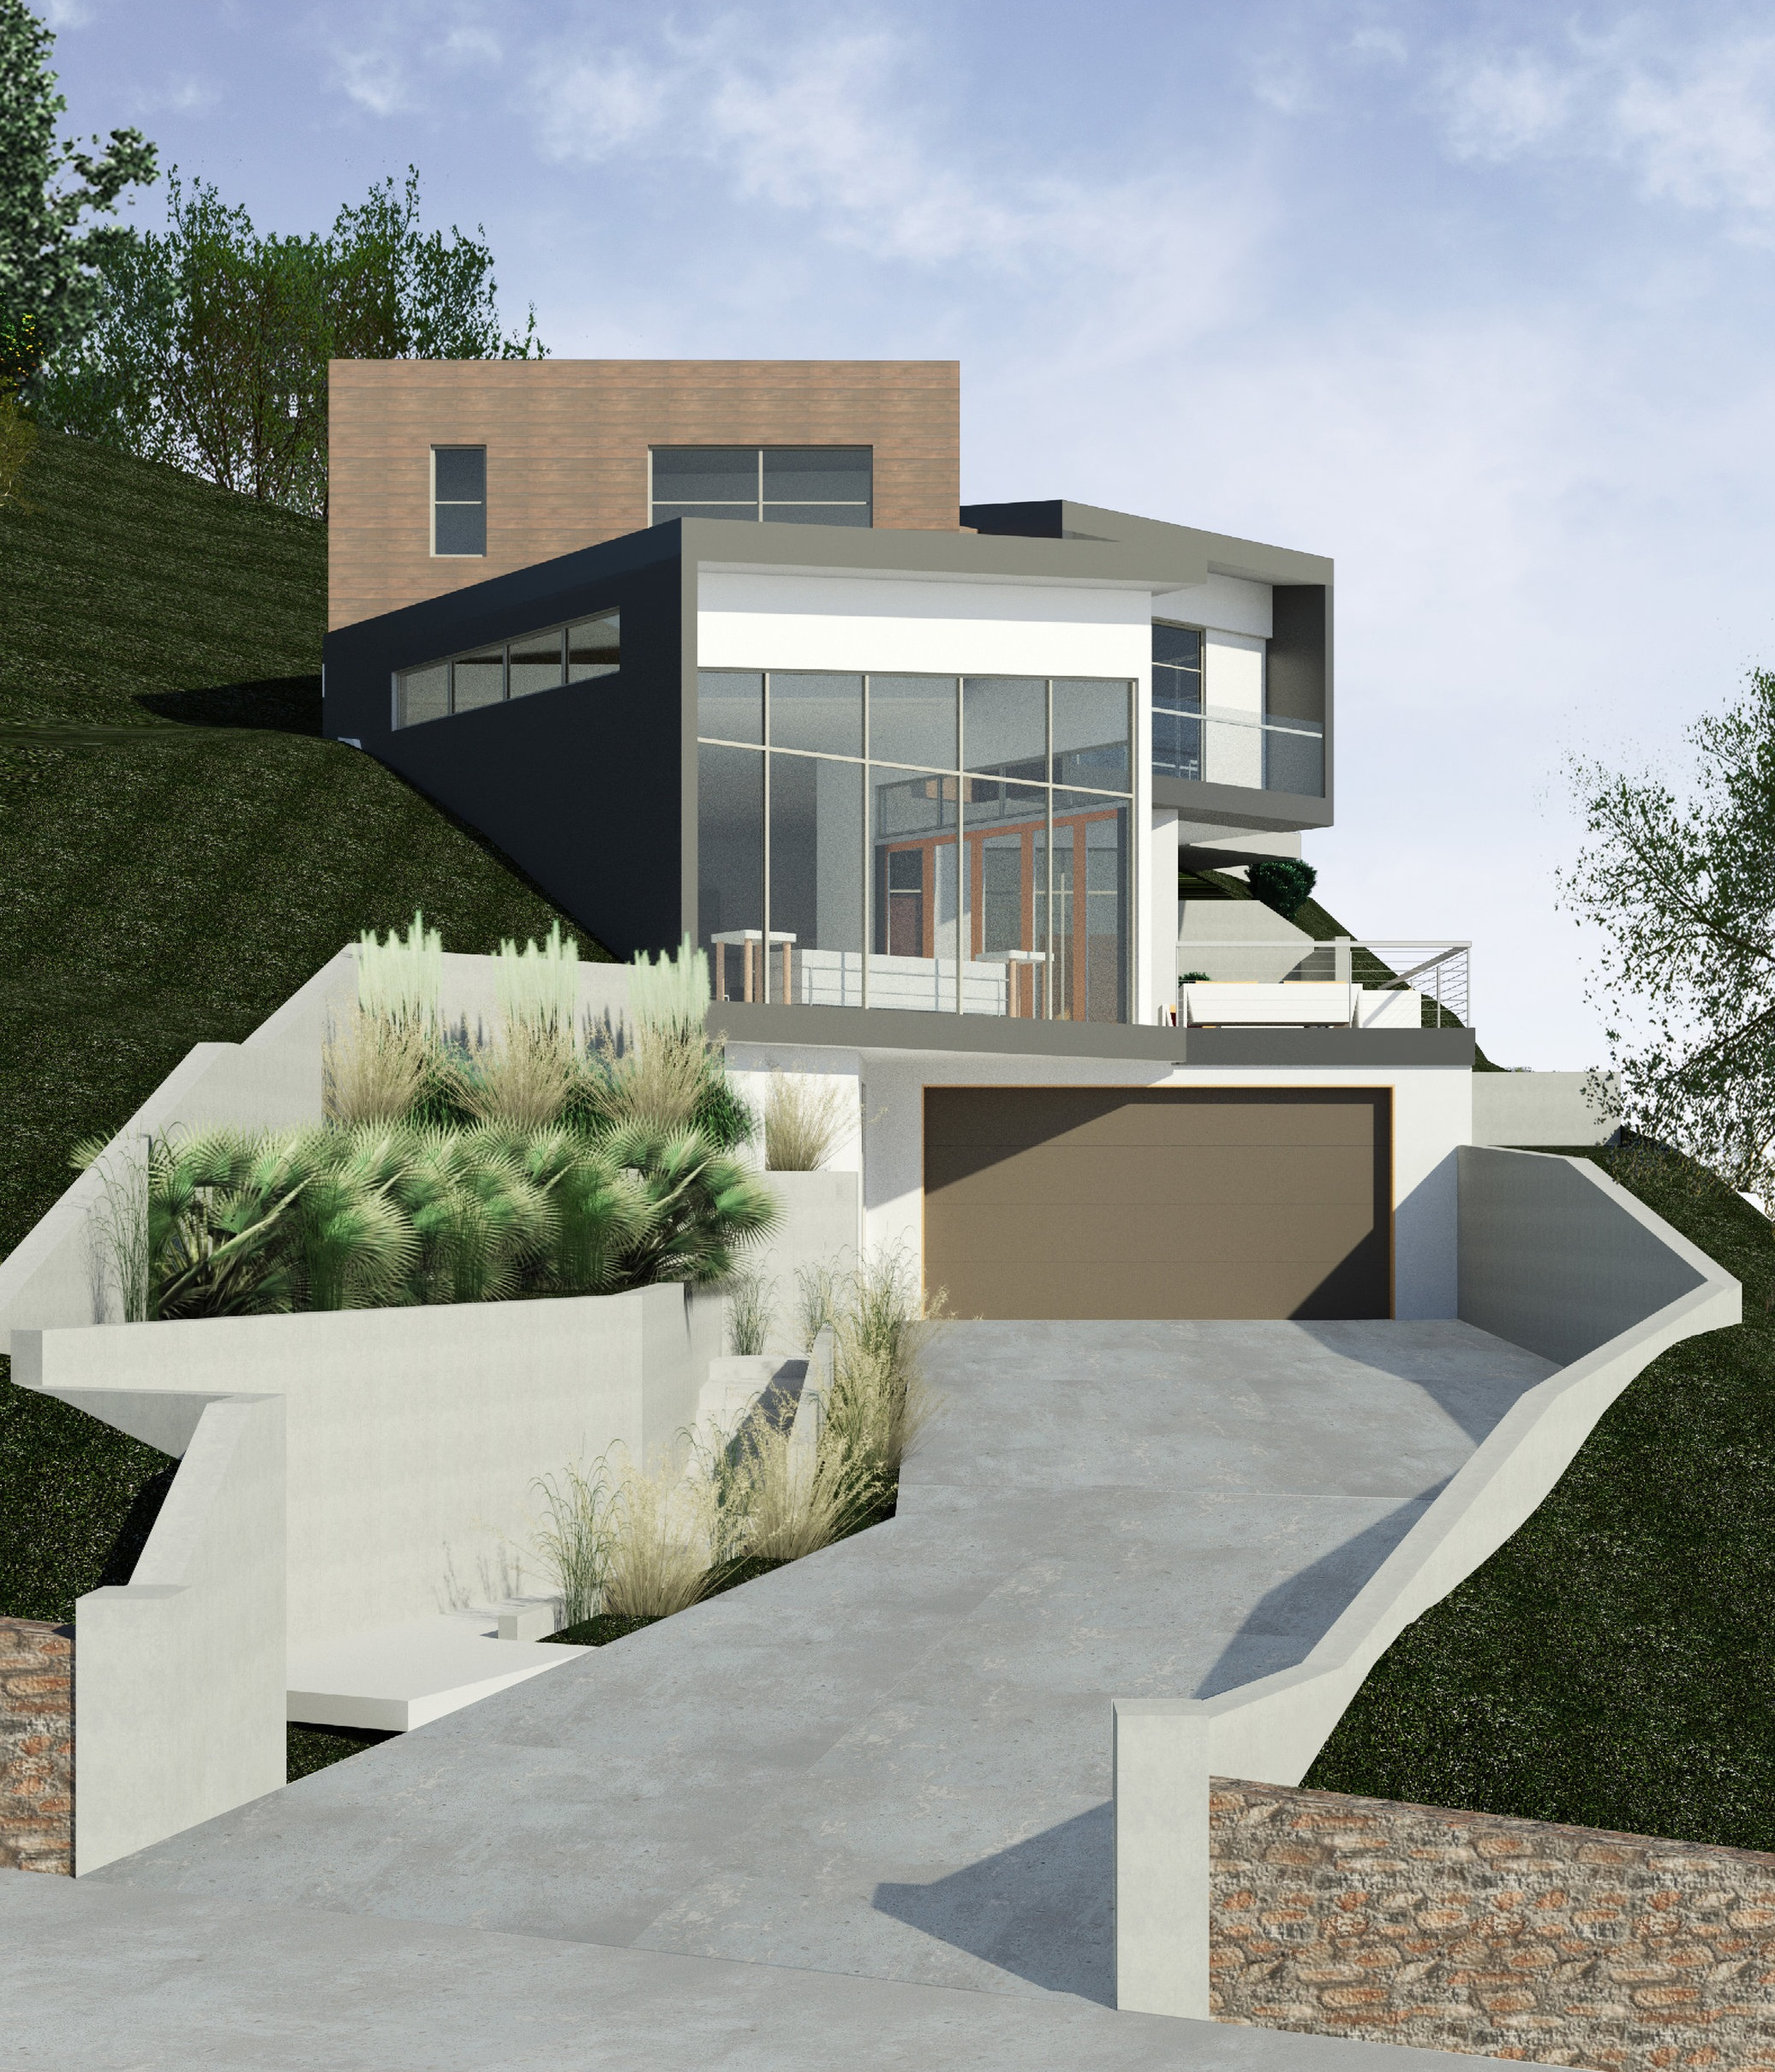 house+2+VIEW+TO+NORTH+small.jpg